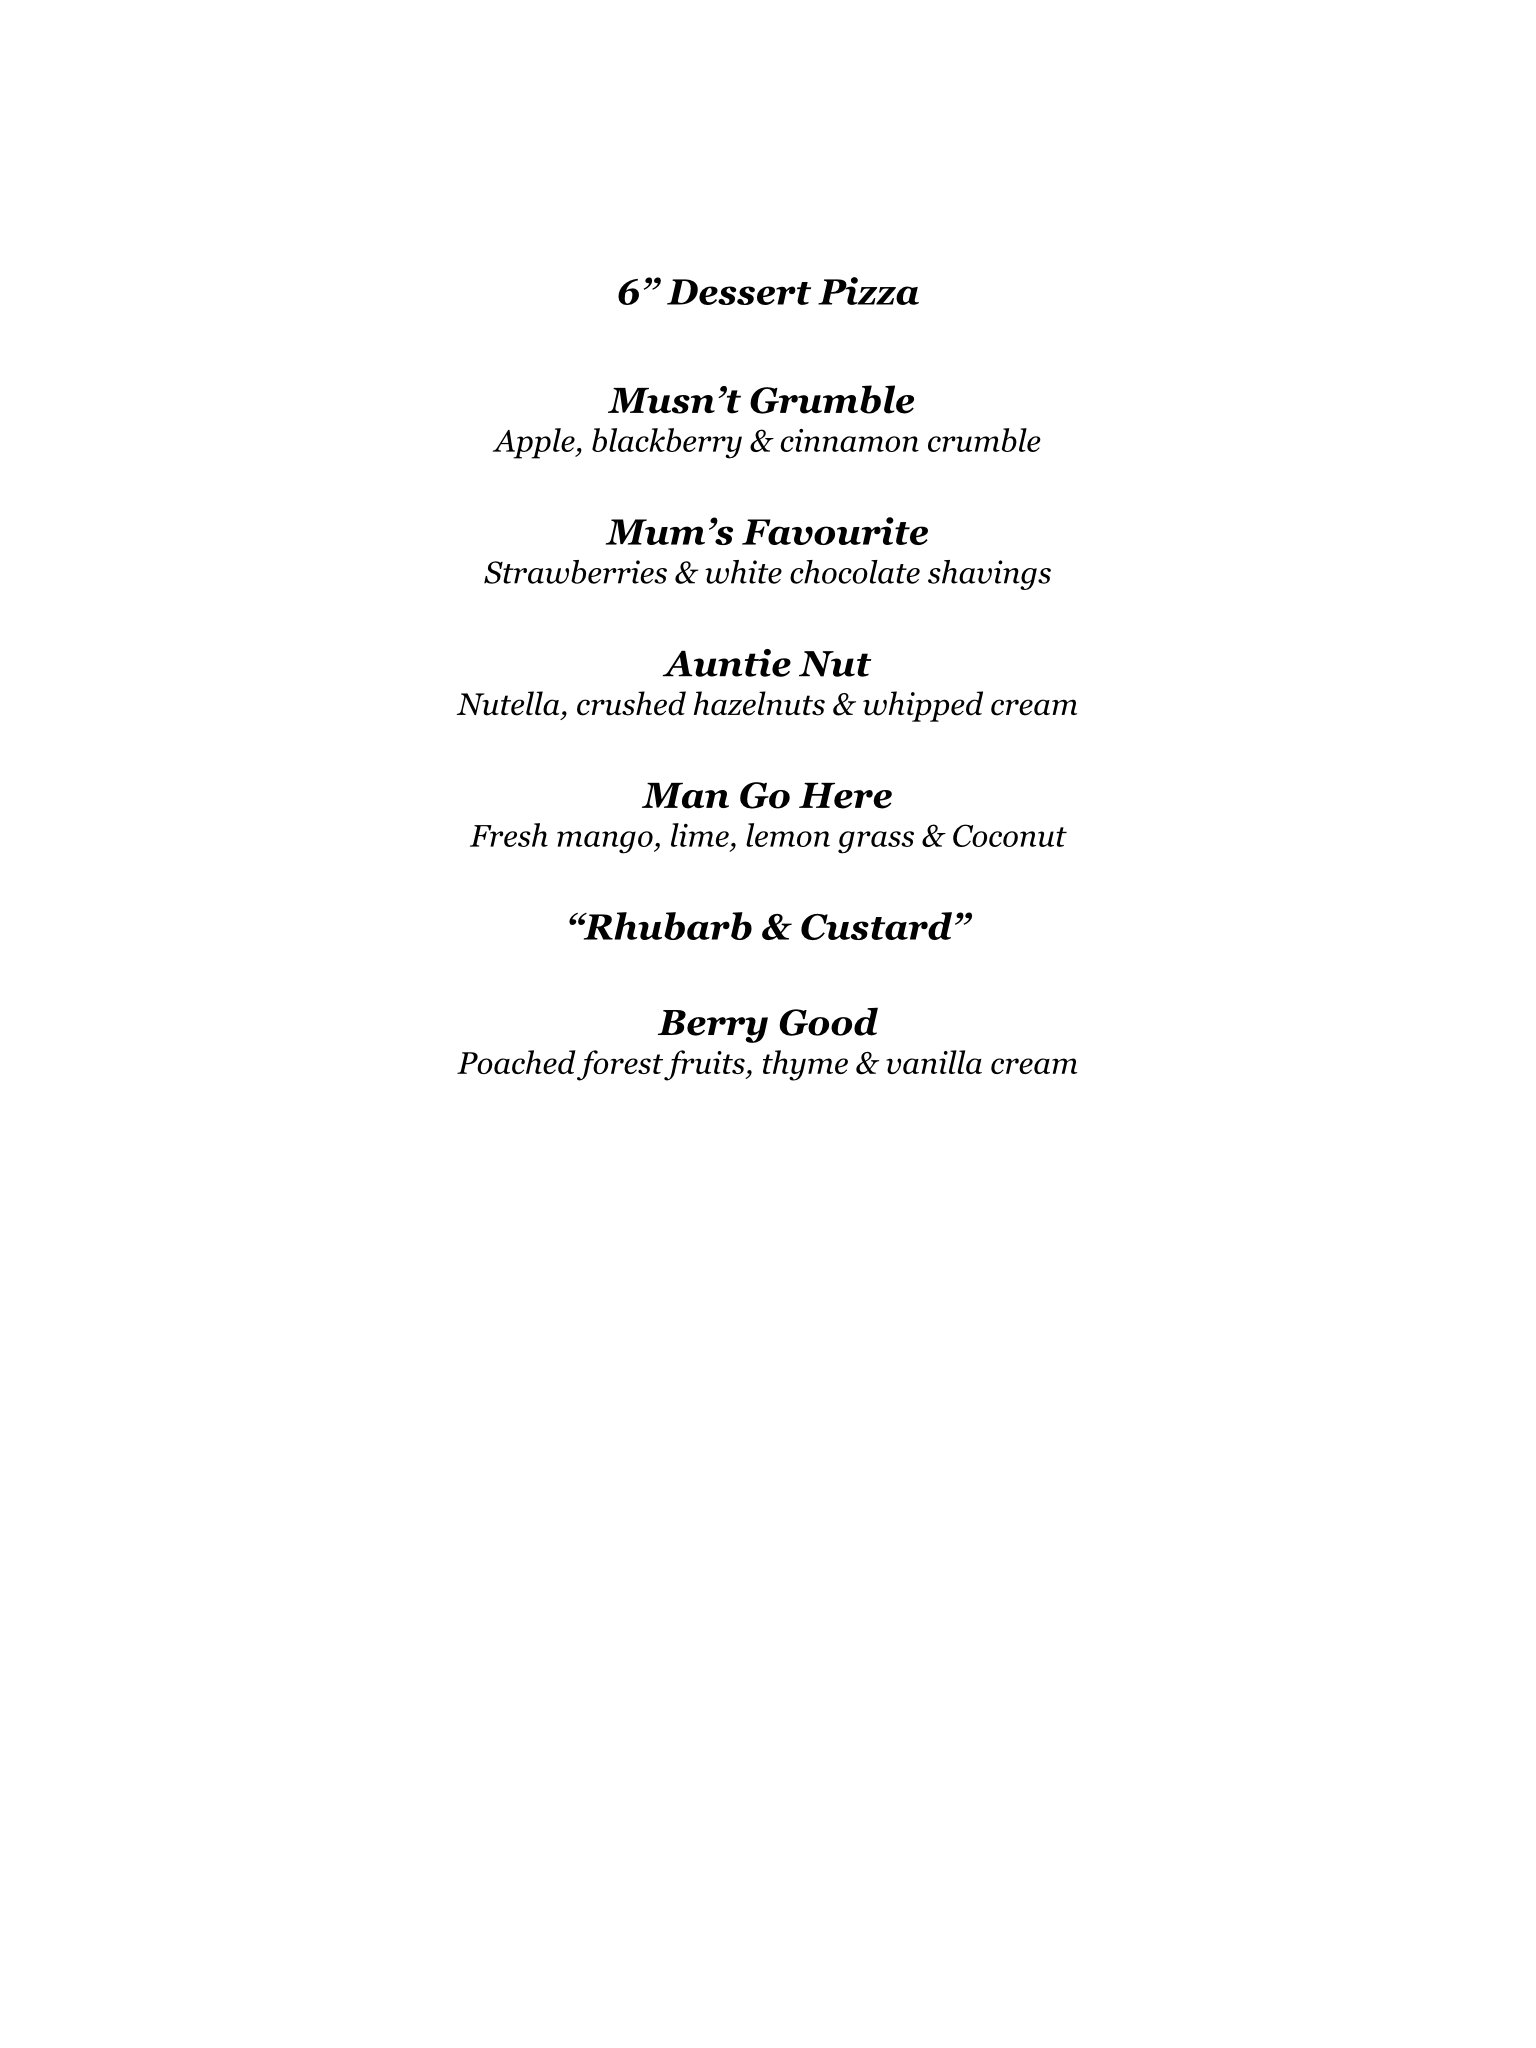 Delicious Catering Menu Old Dough Hook Pizza Co